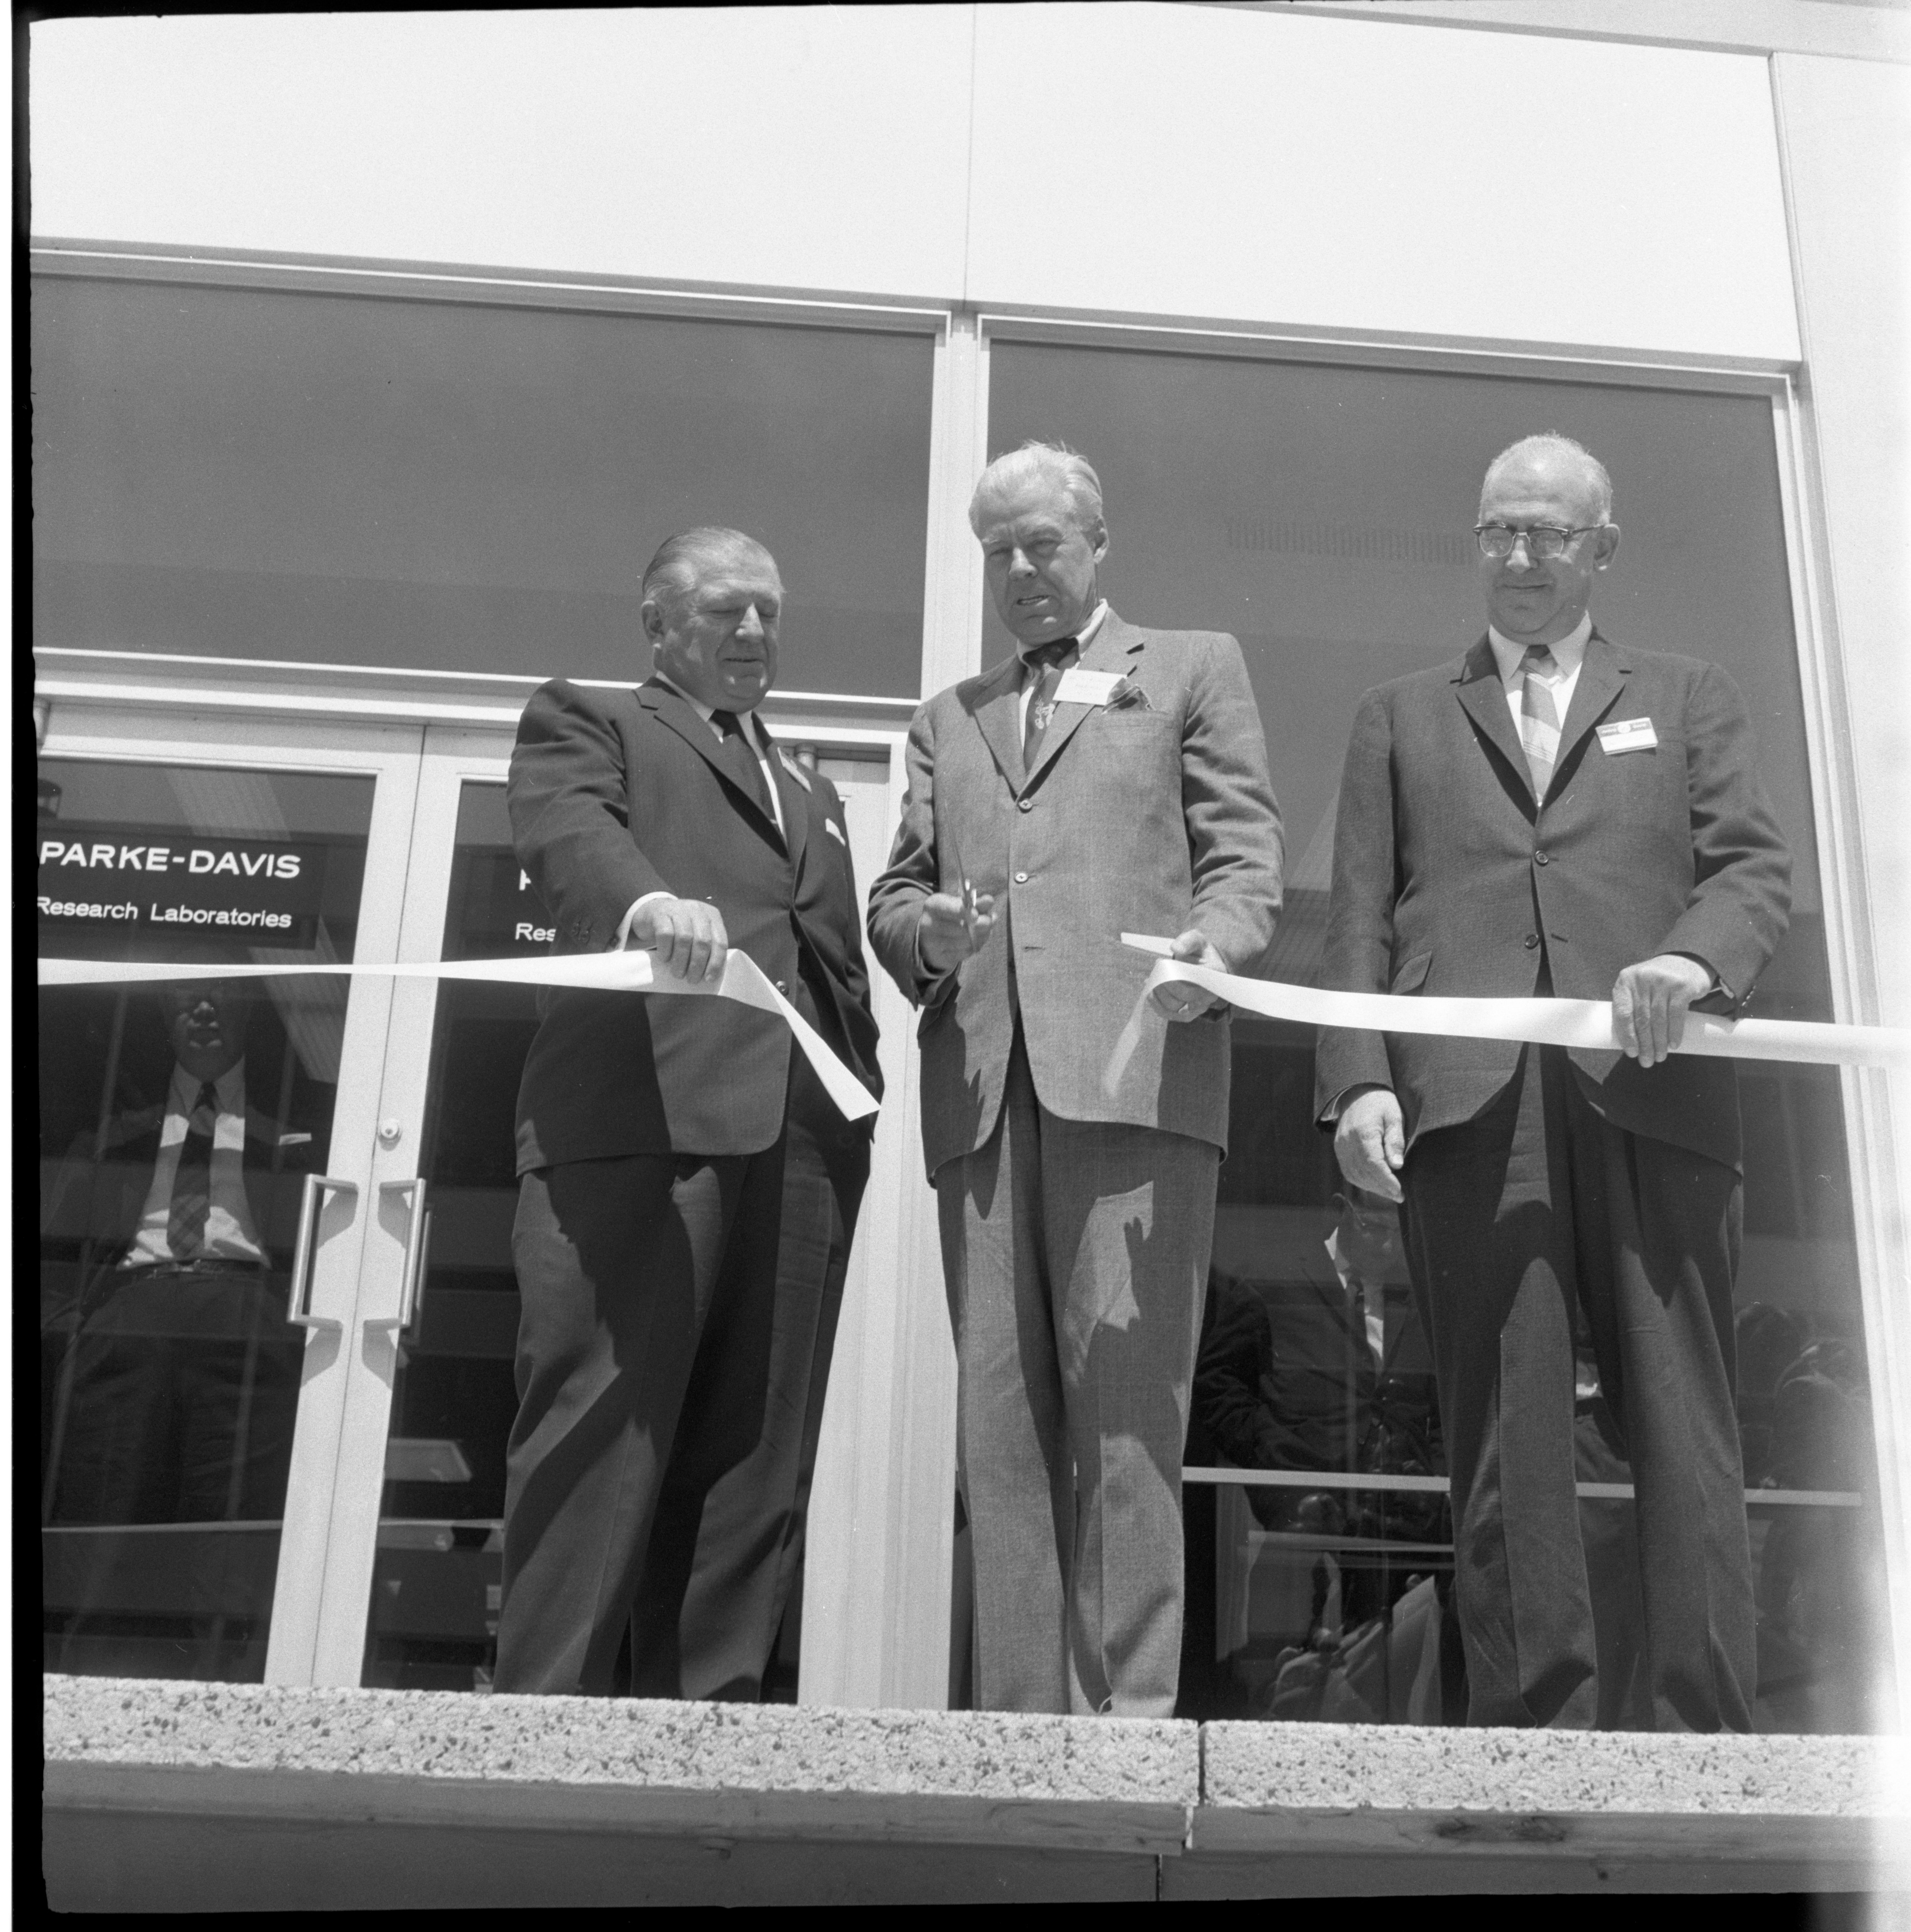 Harlan Hatcher Cuts The Ribbon At The Formal Opening & Dedication Of The New Ann Arbor Parke Davis Research Laboratories, April 1960 image